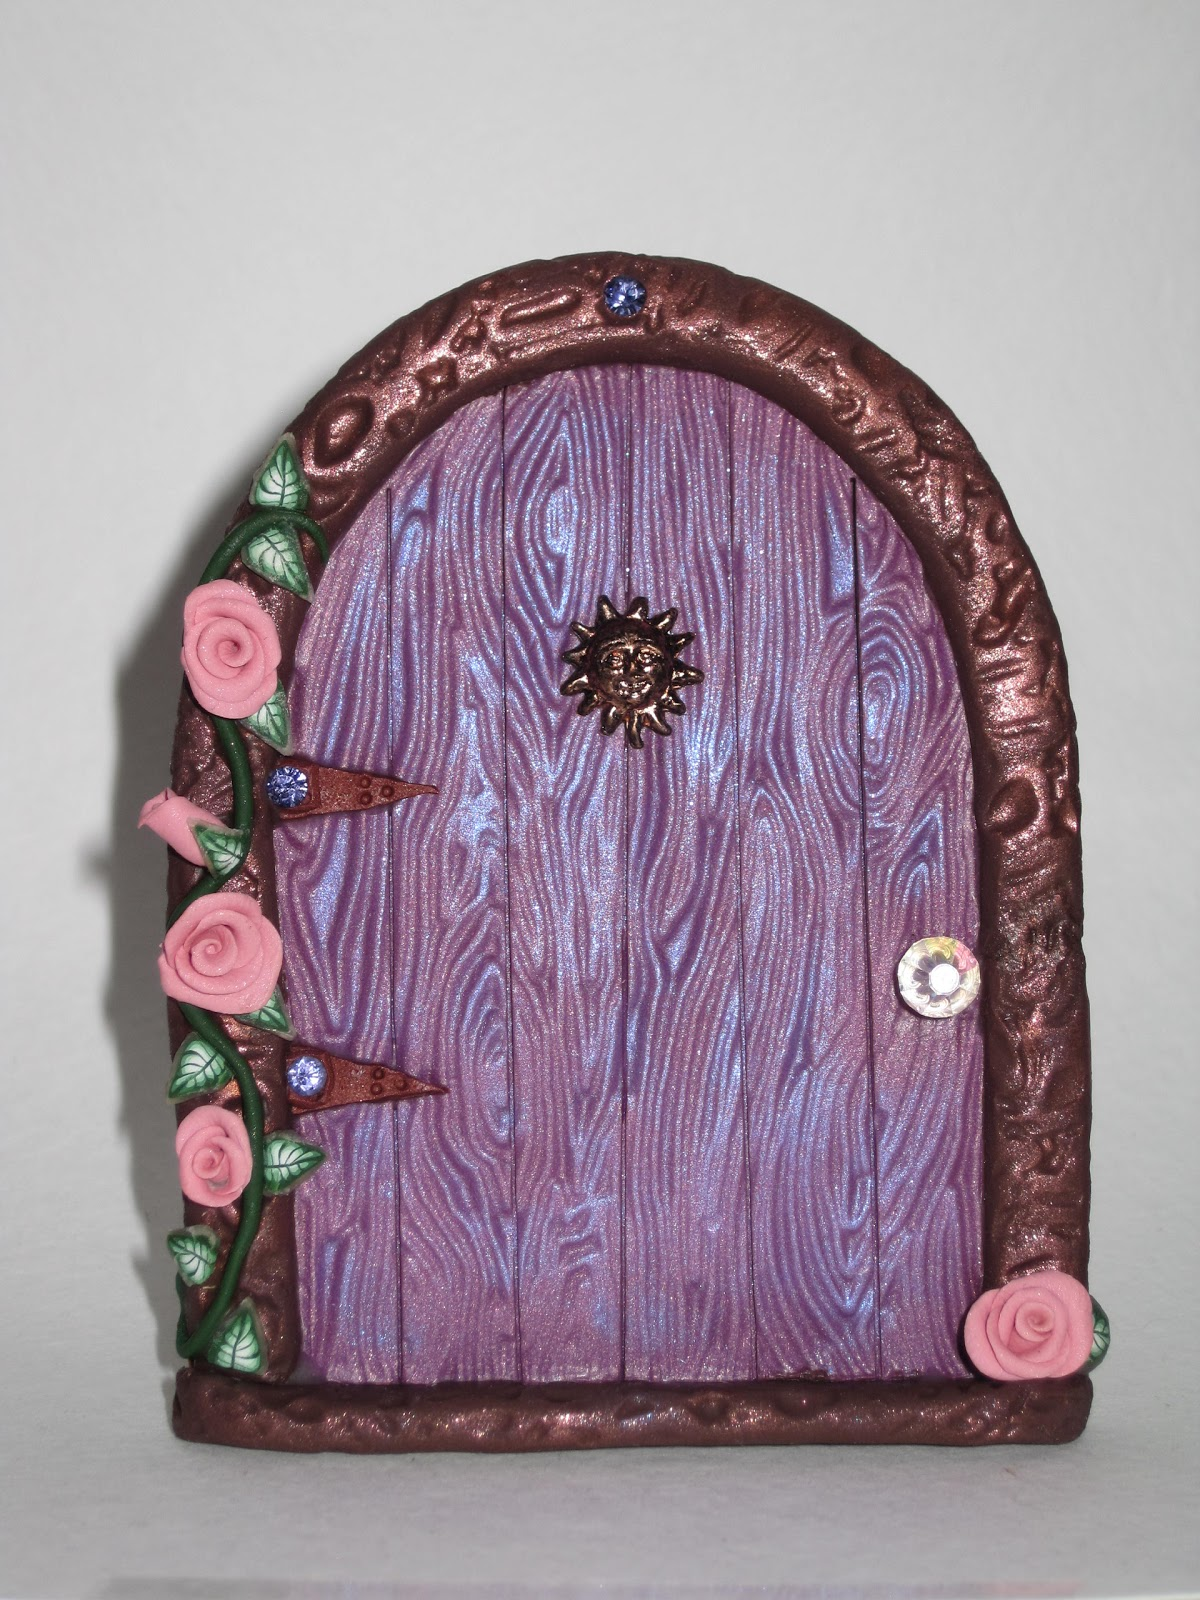 Enchanted owl artistry opening to doorway to the faerie for The faerie door